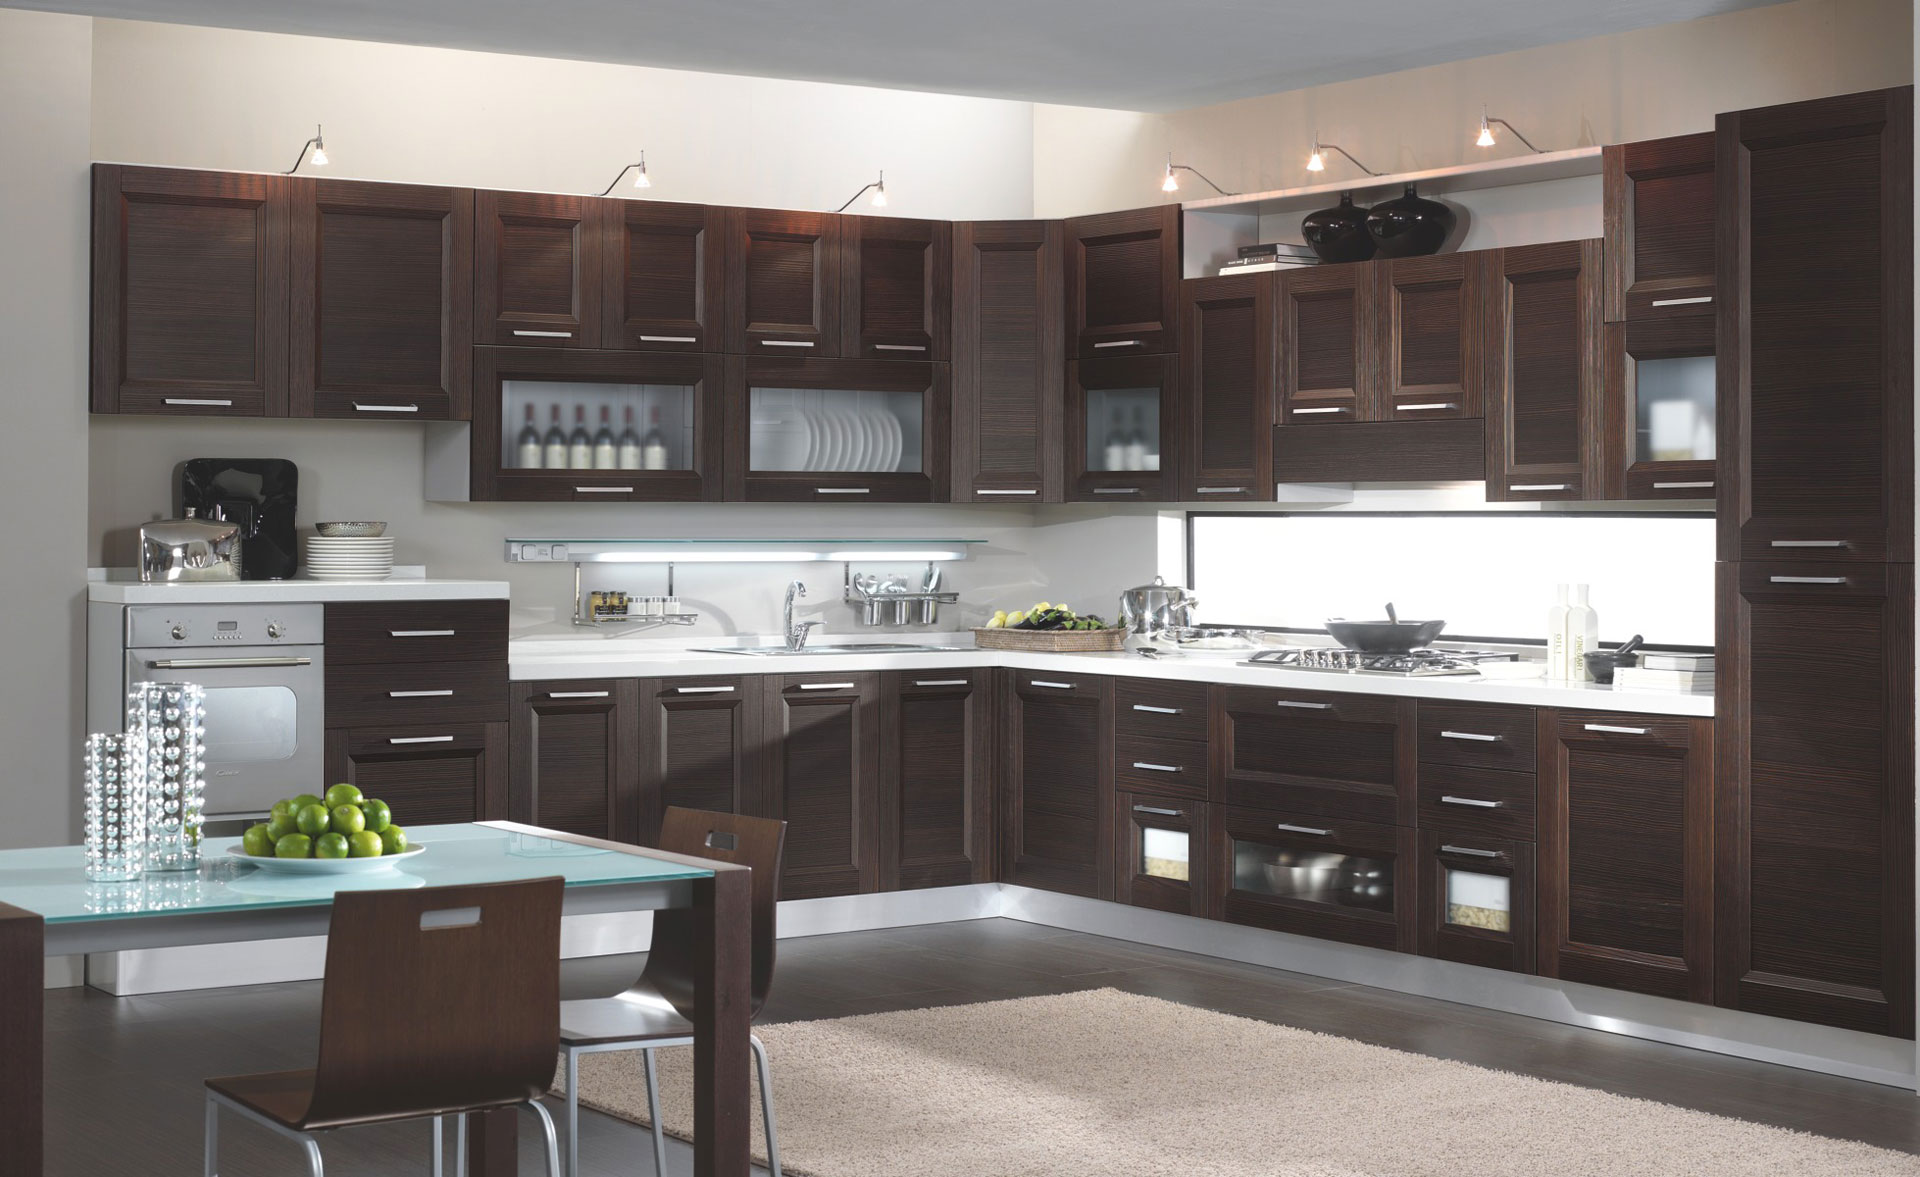 Emejing Illuminazione A Led Cucina Ideas - Skilifts.us - skilifts.us